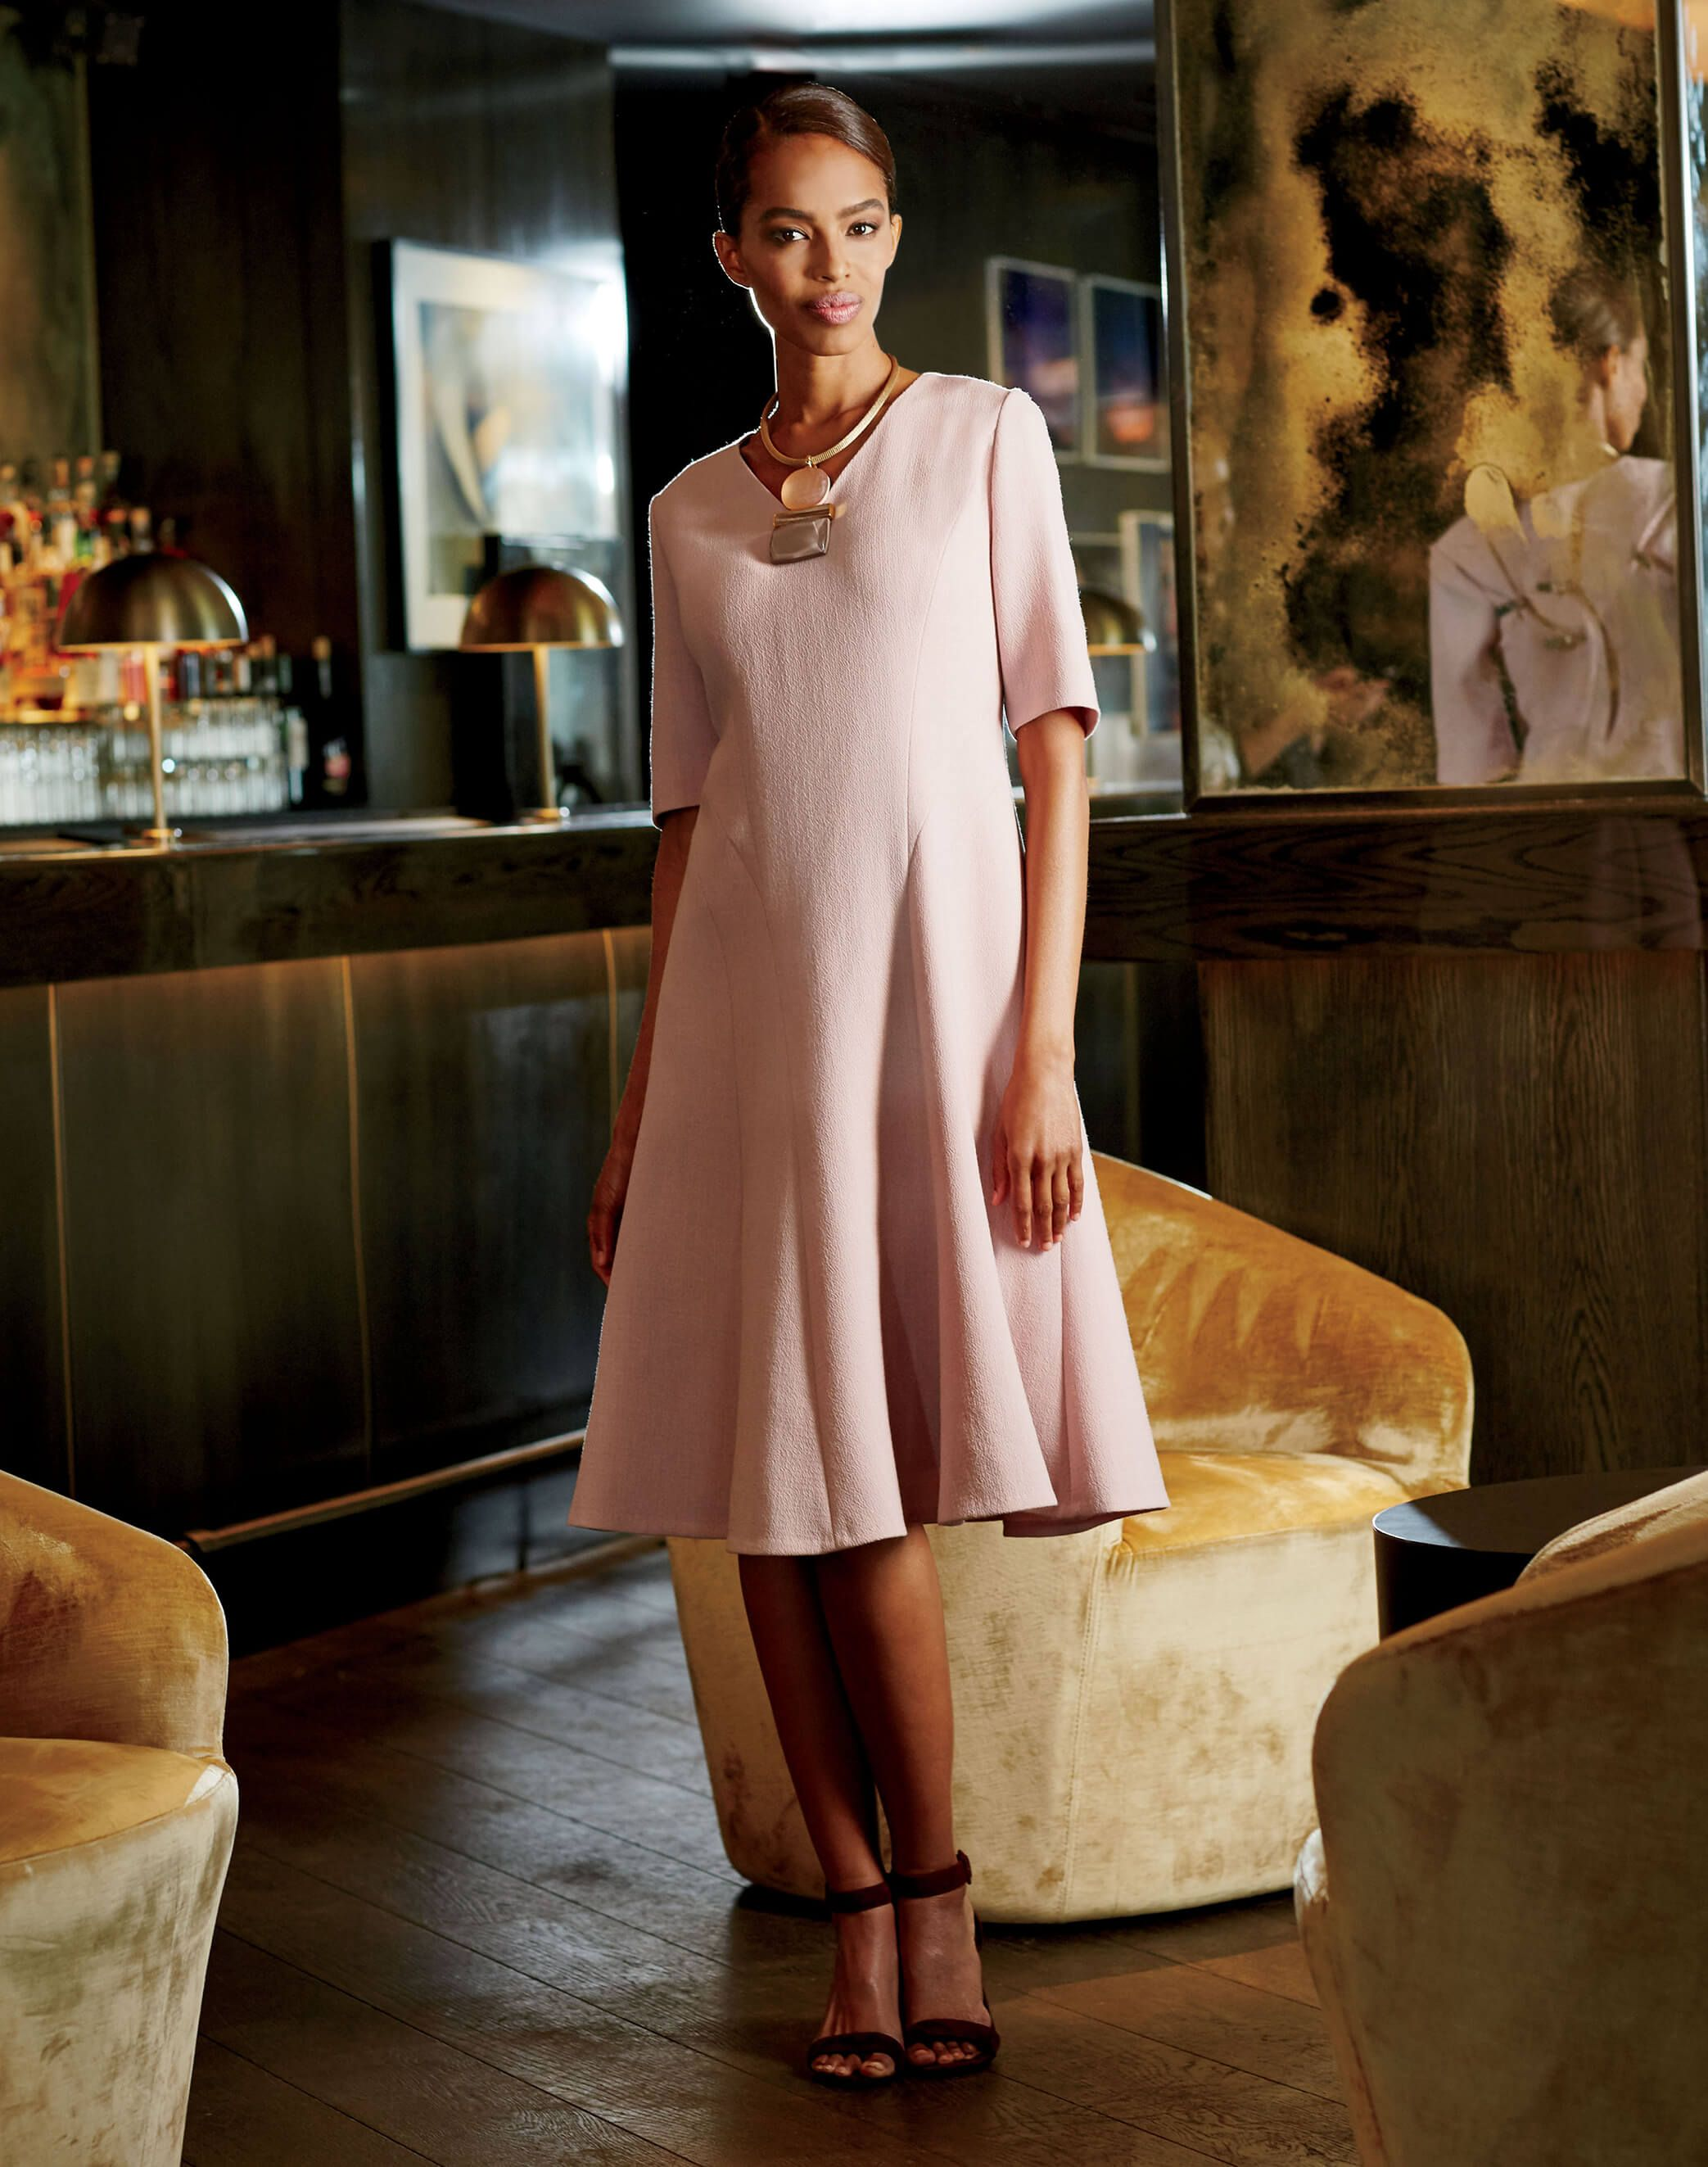 Mirasol Dress and Triple Drop Necklace - Outfits - New Arrivals | Lafayette 148 New York: